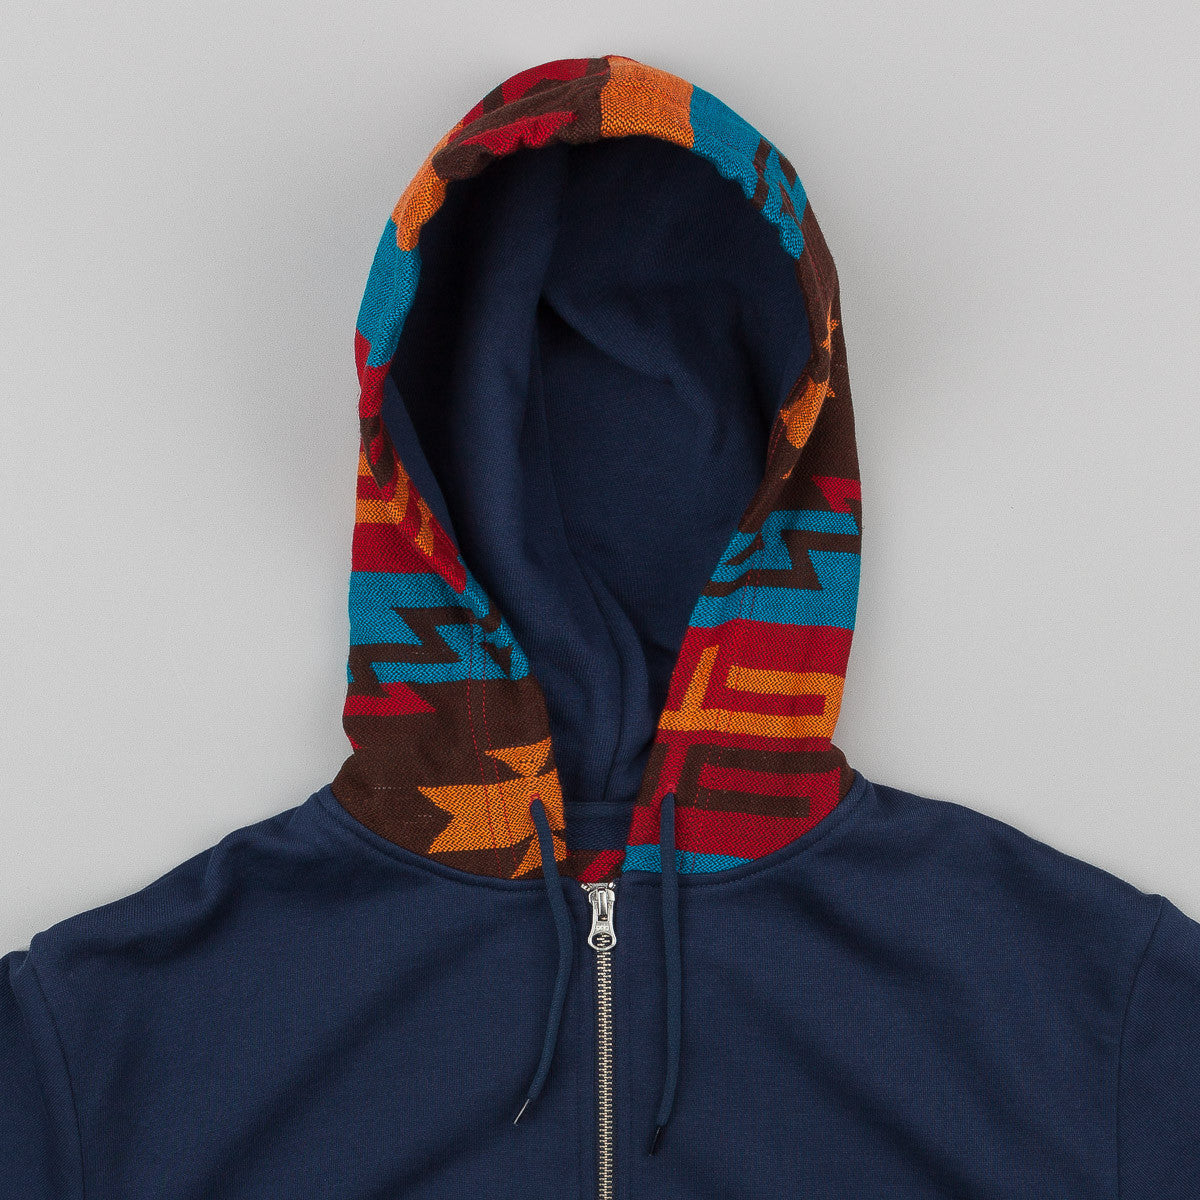 Penfield Eyota Hooded Sweatshirt - Navy